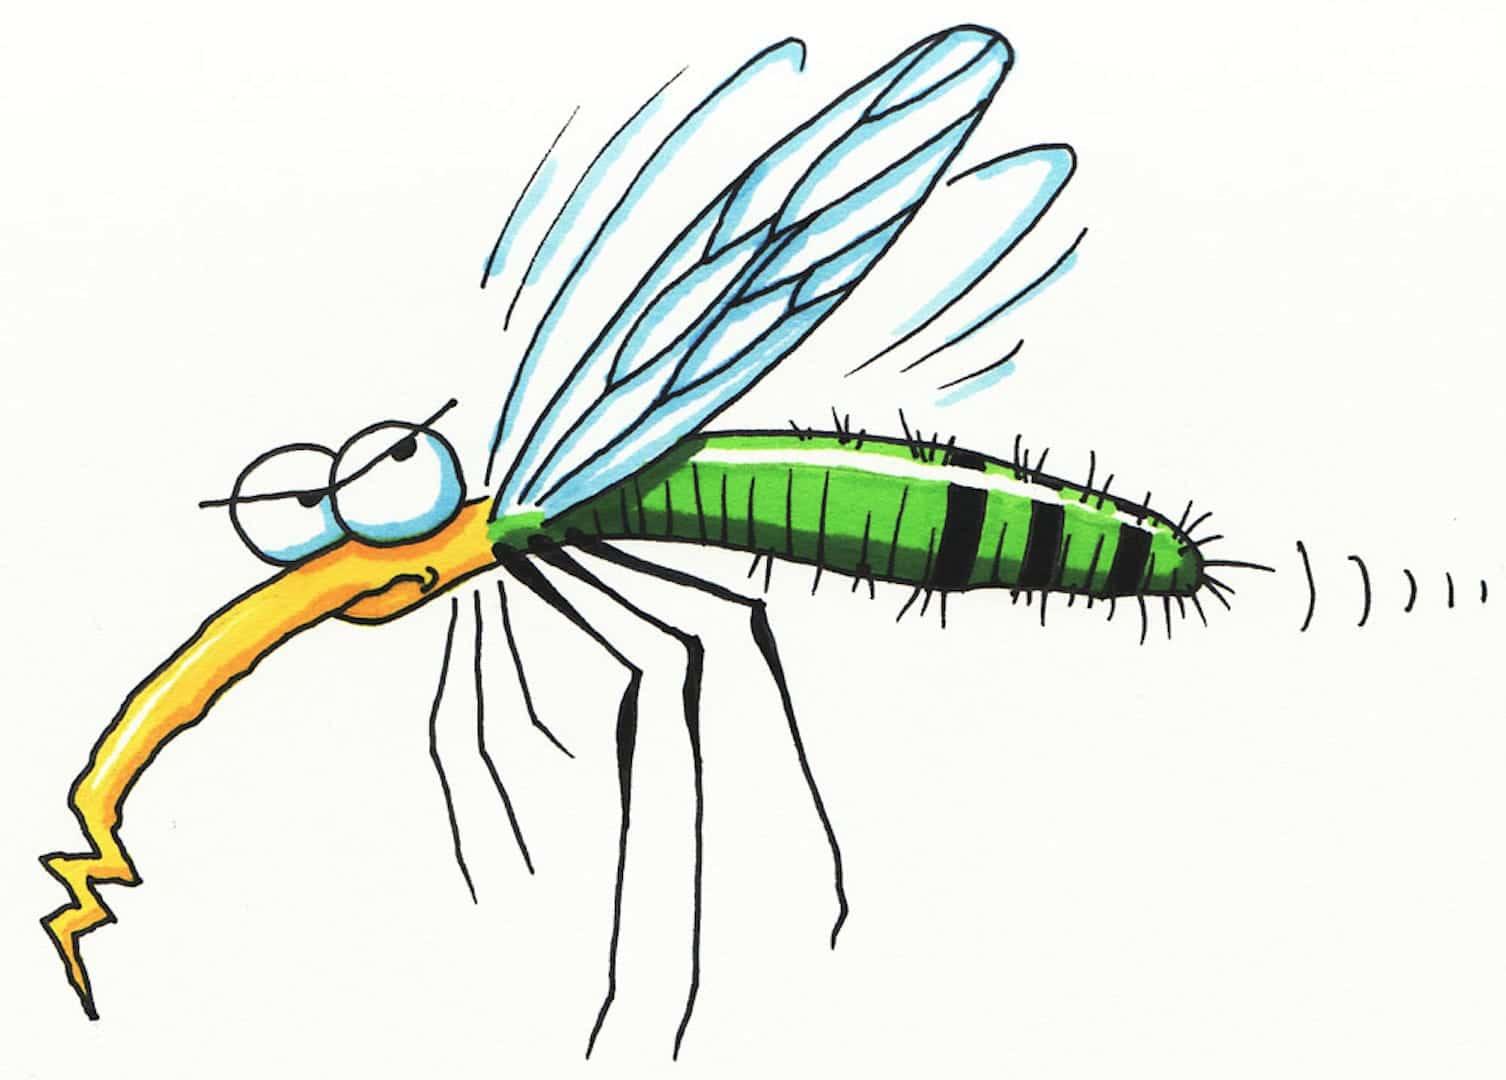 Online Video Helps Prepare Pesticide Applicators to Pass the Mosquito Control Exam